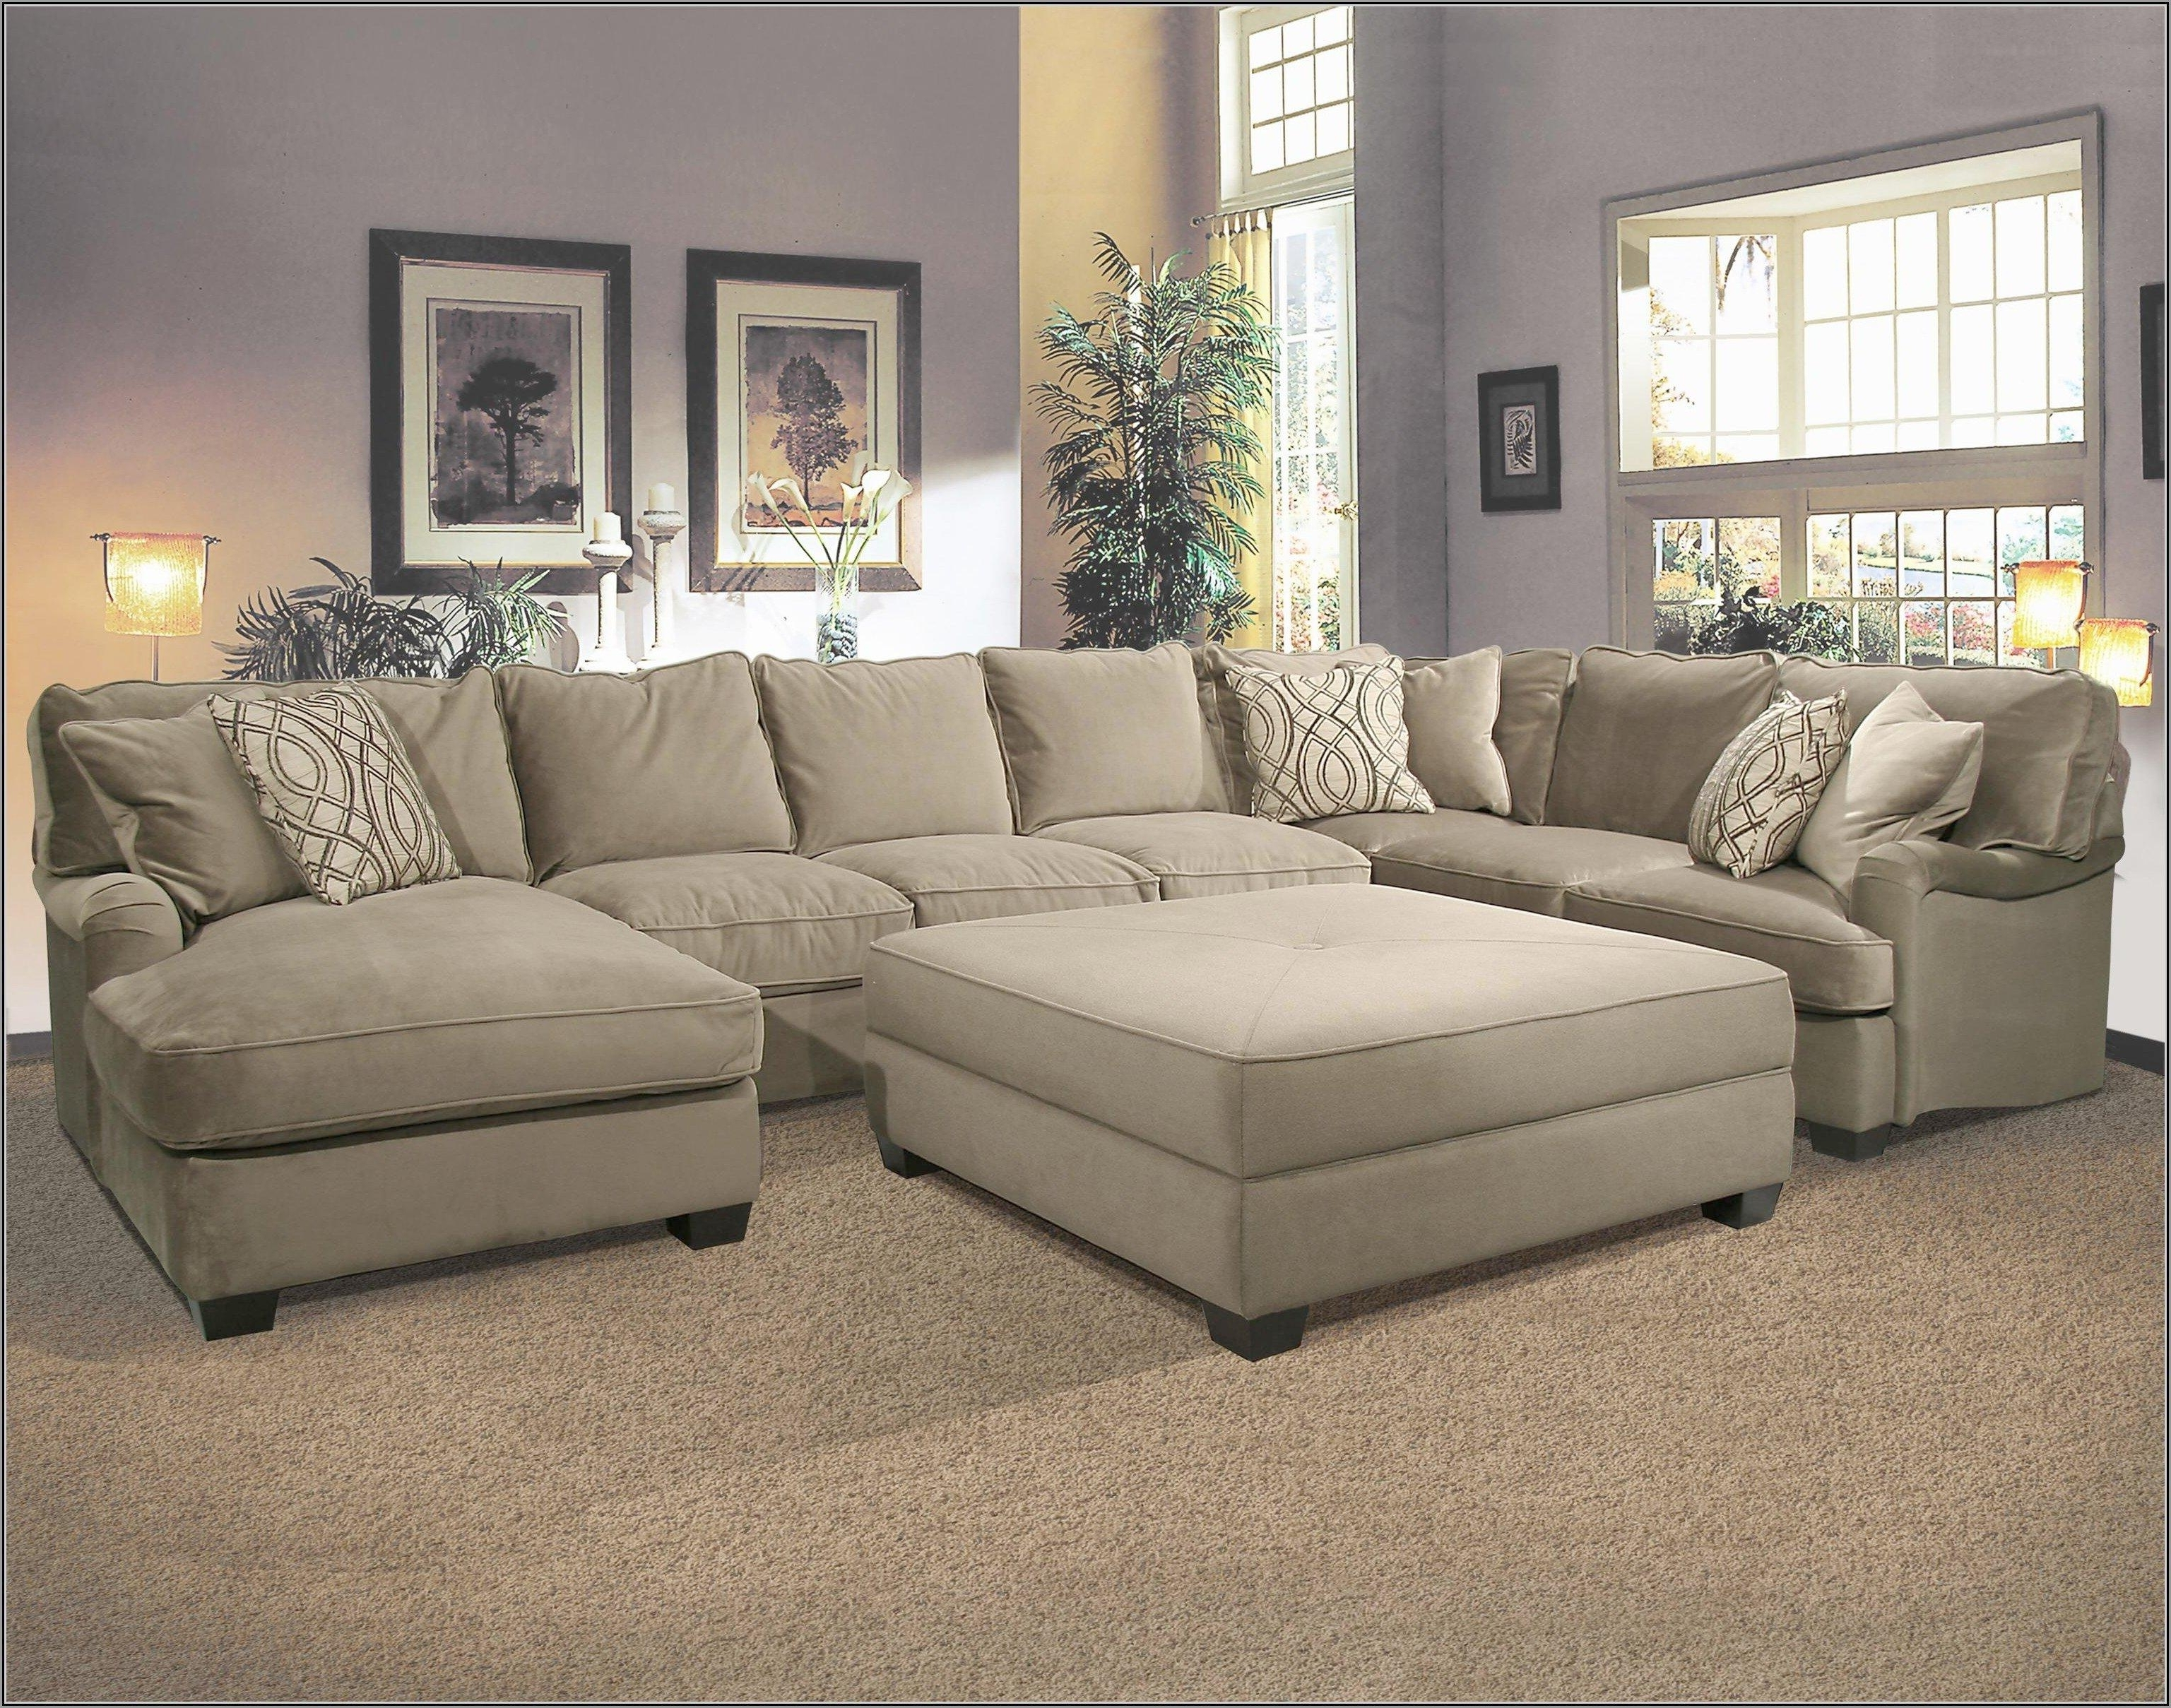 Sofas With Ottoman Pertaining To Well Known Sofa : Deep Seated Sectional New Sectional Sofa With Ottoman Deep (View 7 of 20)